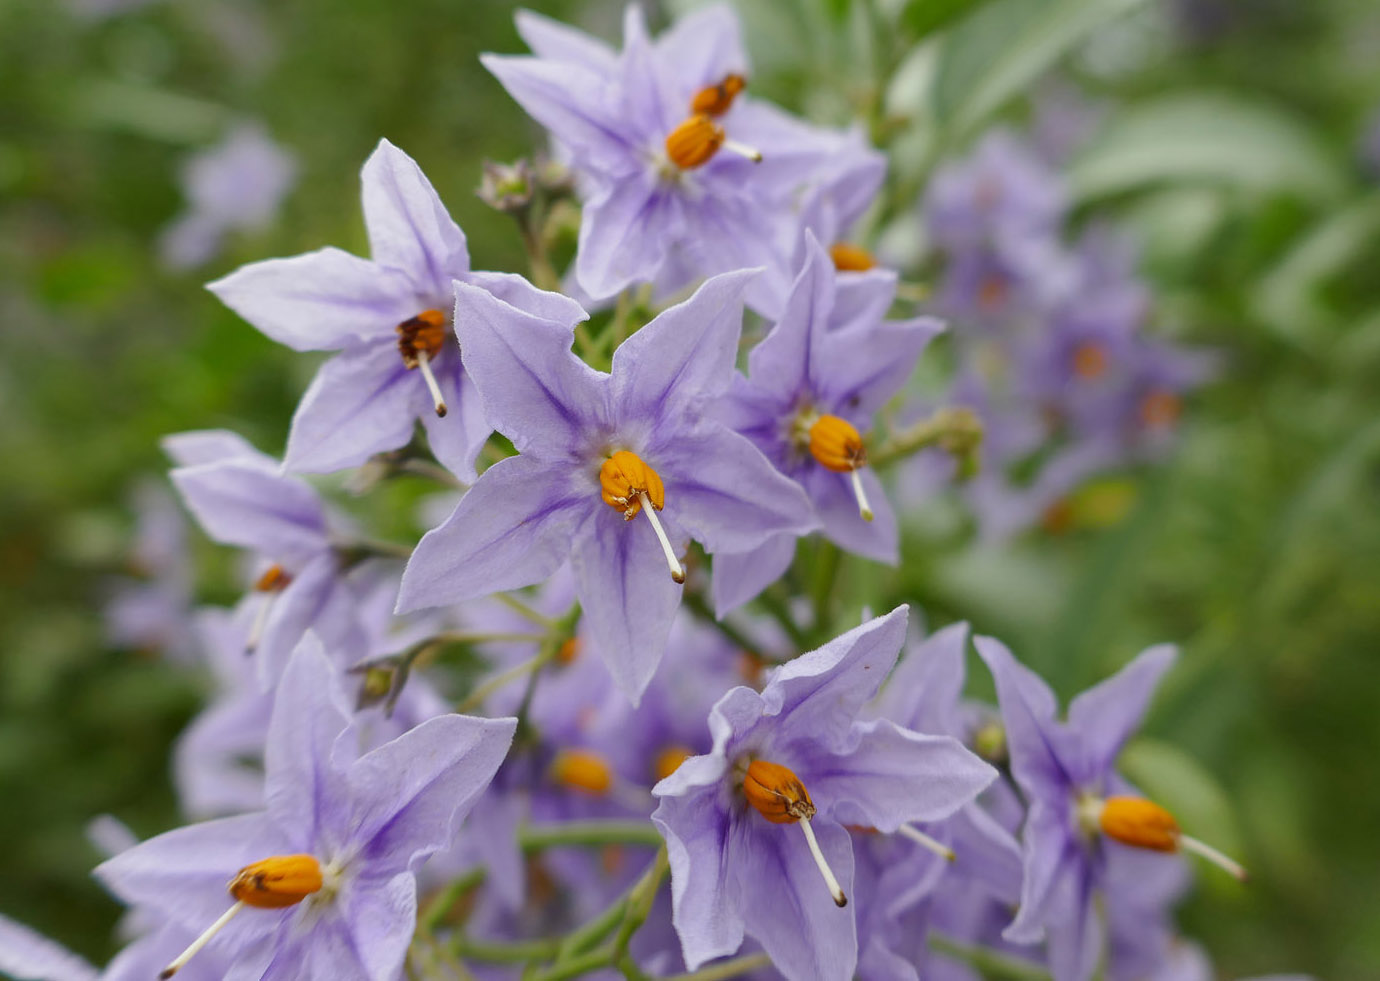 Close-up of <i>Solanum crispum</i> flowers